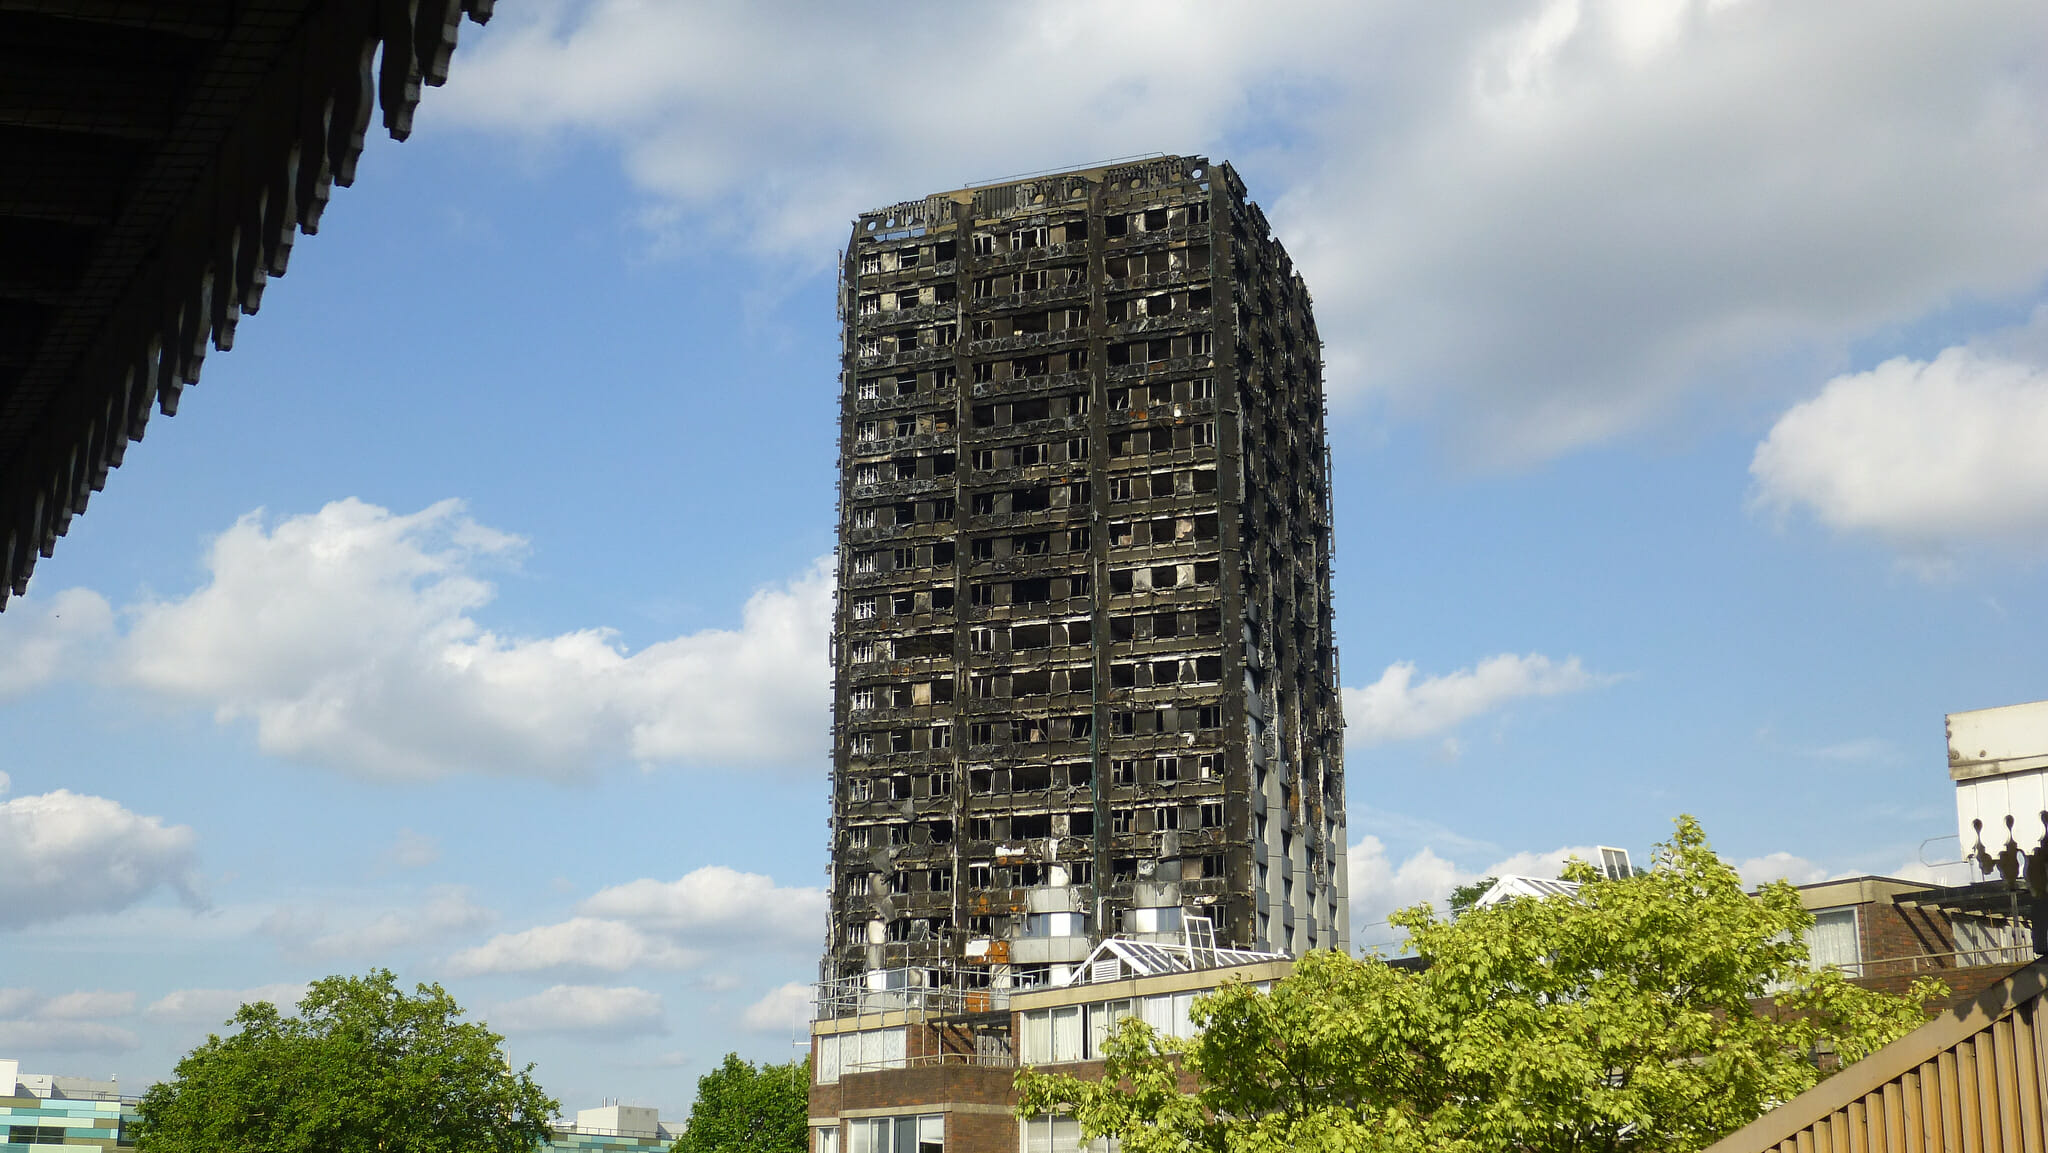 Grenfell Tower after the tragic fire. Photo by flickr user PaulSHird, CC BY-SA 2.0